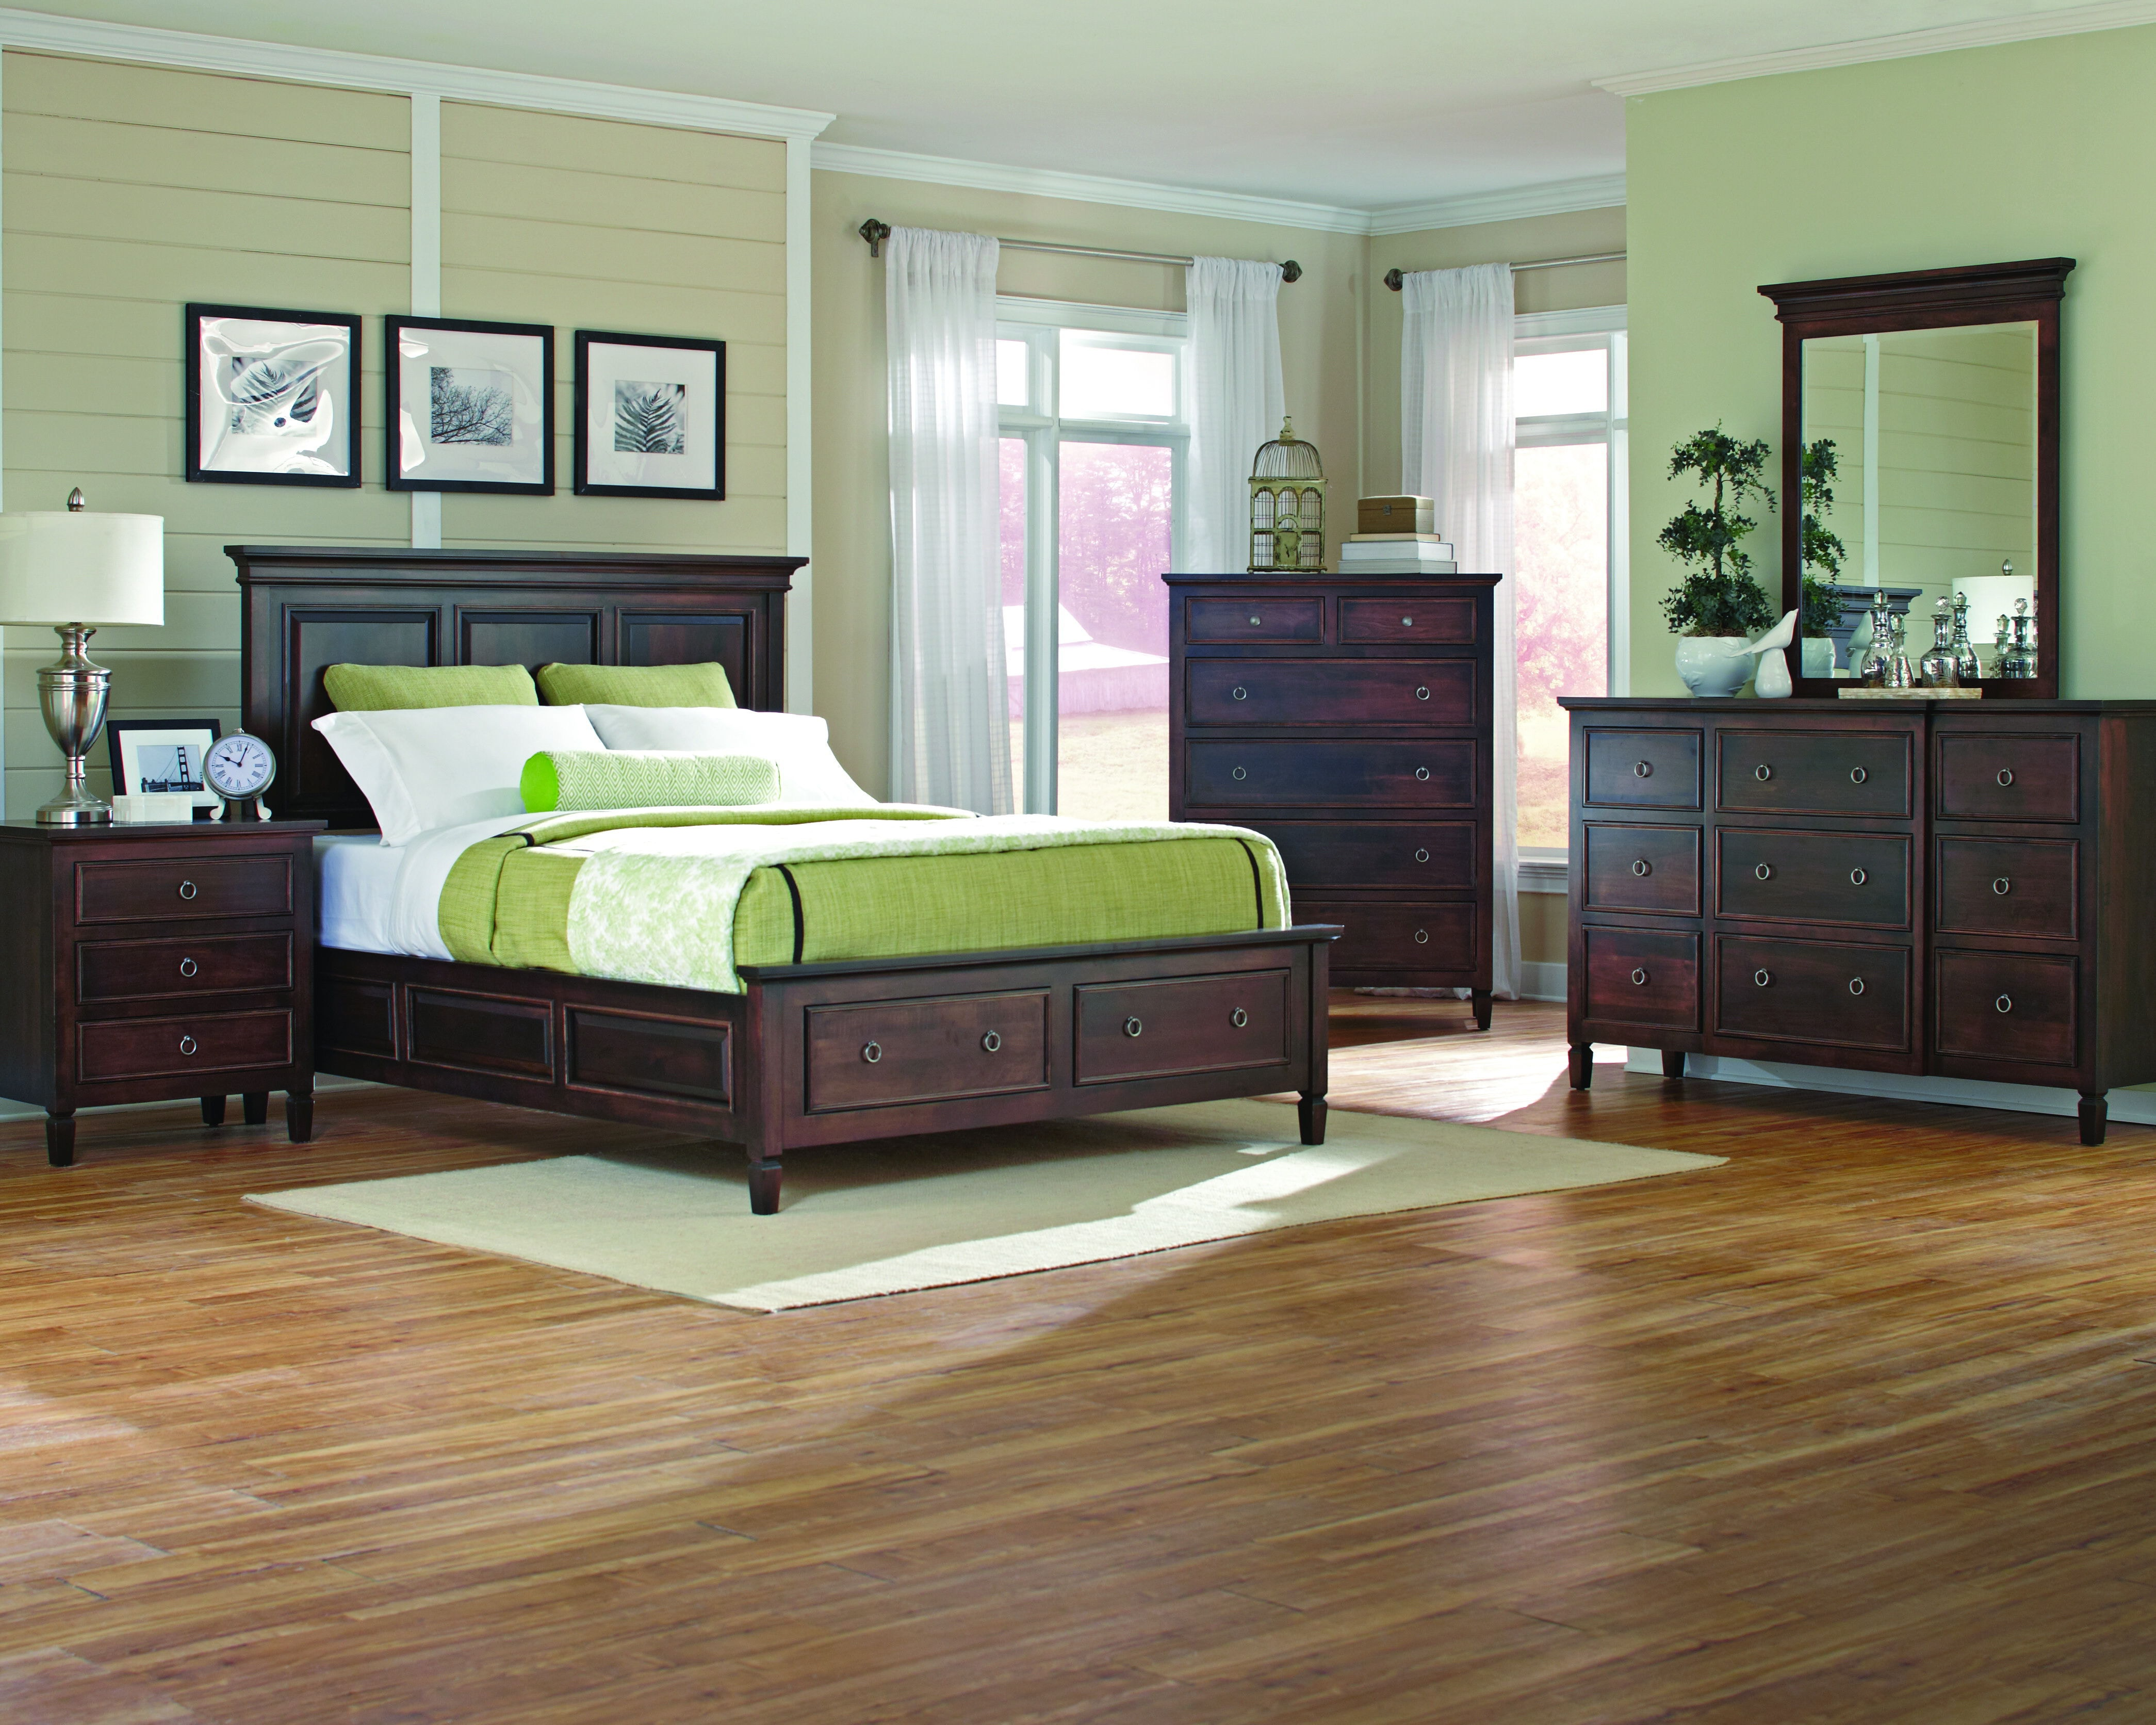 Palettes By Winesburg Vineyard Haven Panel Bed With Low Footboard From  Walter E. Smithe Furniture